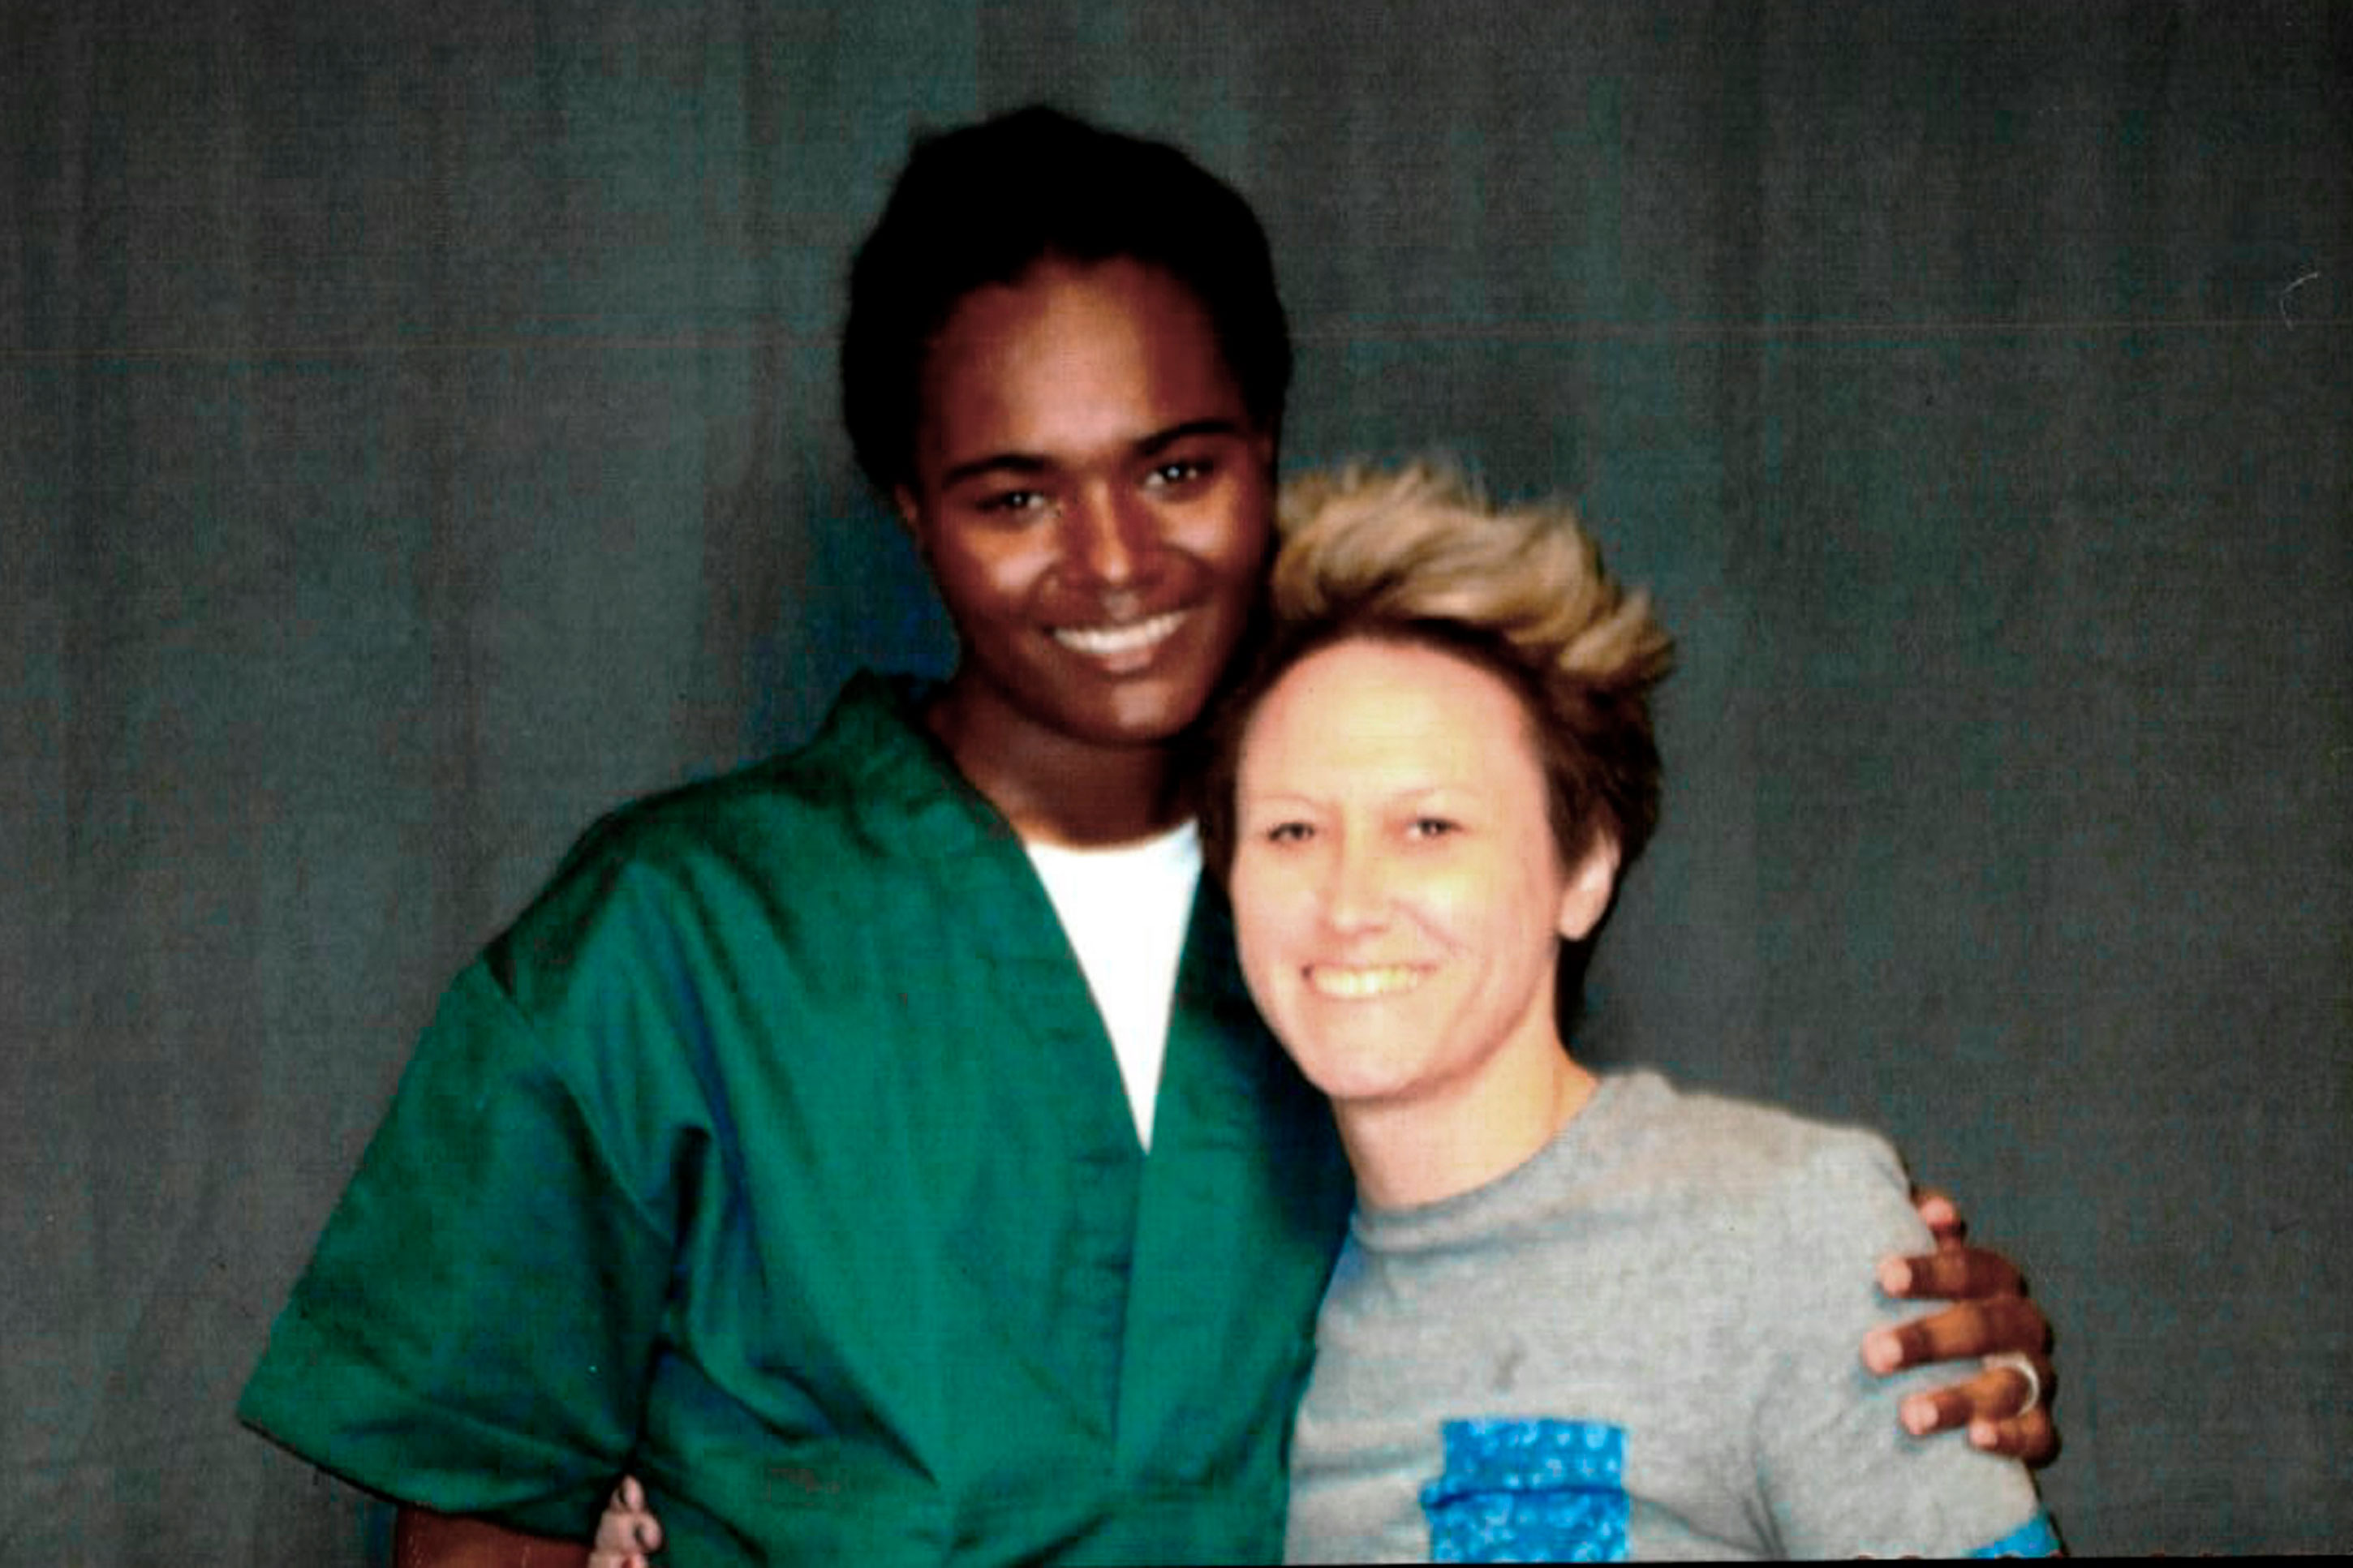 This 2018 photo provided by inmate Lindsay Saunders-Velez shows her, at left, with mentor Meghan Baker at the Colorado Territorial Correctional Facility in Cañon City, Colo.